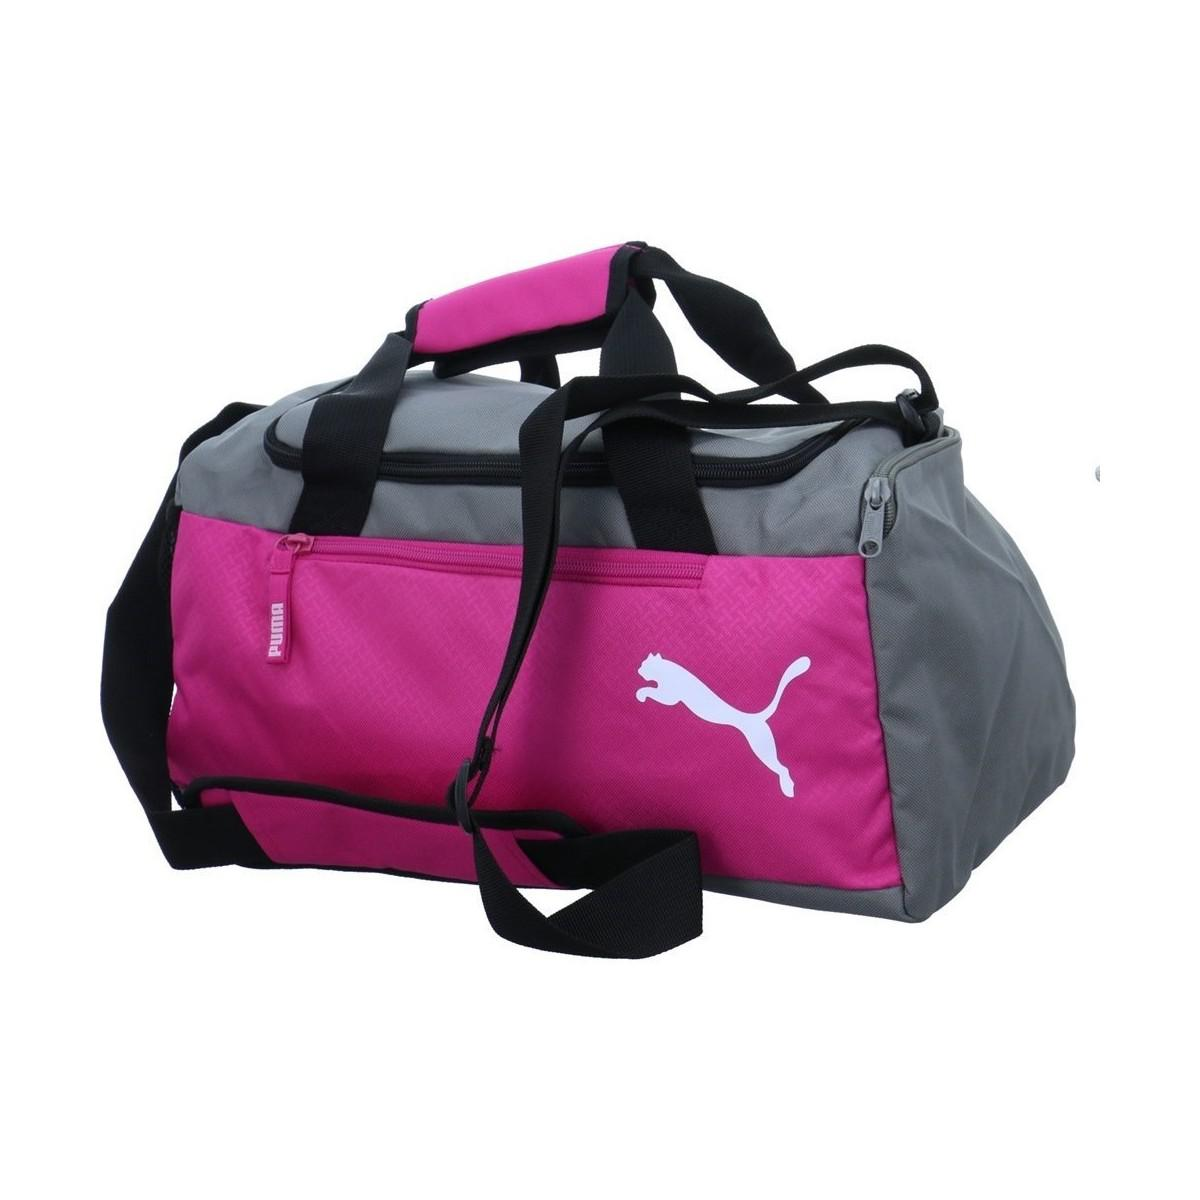 3b5c6eec1b51 PUMA Fundamentals Sports Bag Women s Sports Bag In Grey in Gray for ...